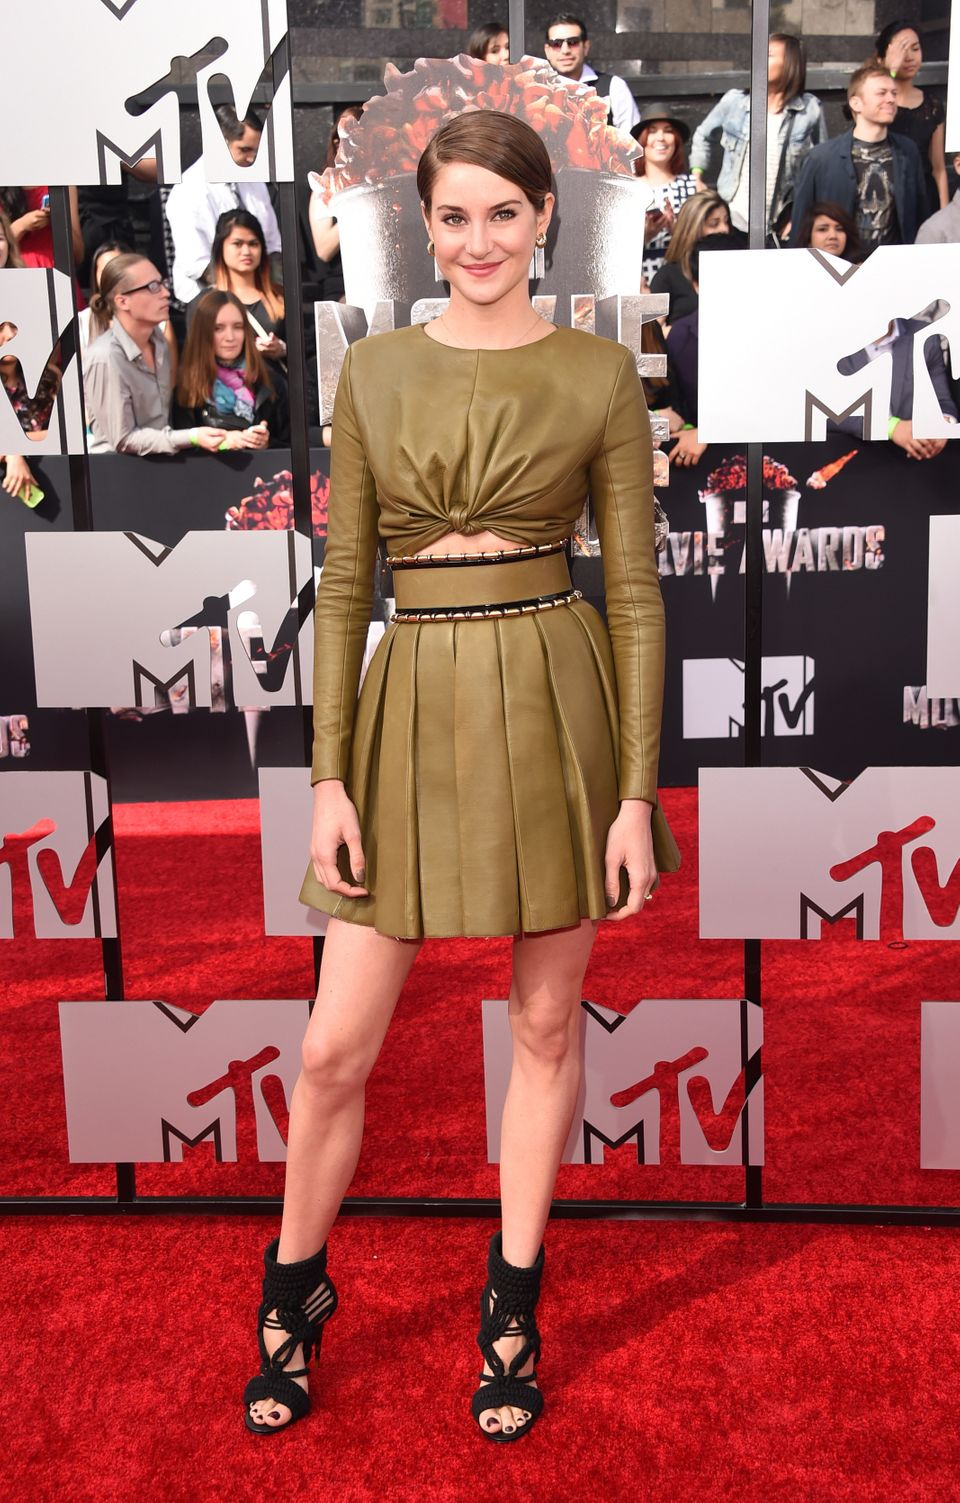 LOS ANGELES, CA - APRIL 13:  Actress Shailene Woodley attends the 2014 MTV Movie Awards at Nokia Theatre L.A. Live on April 1